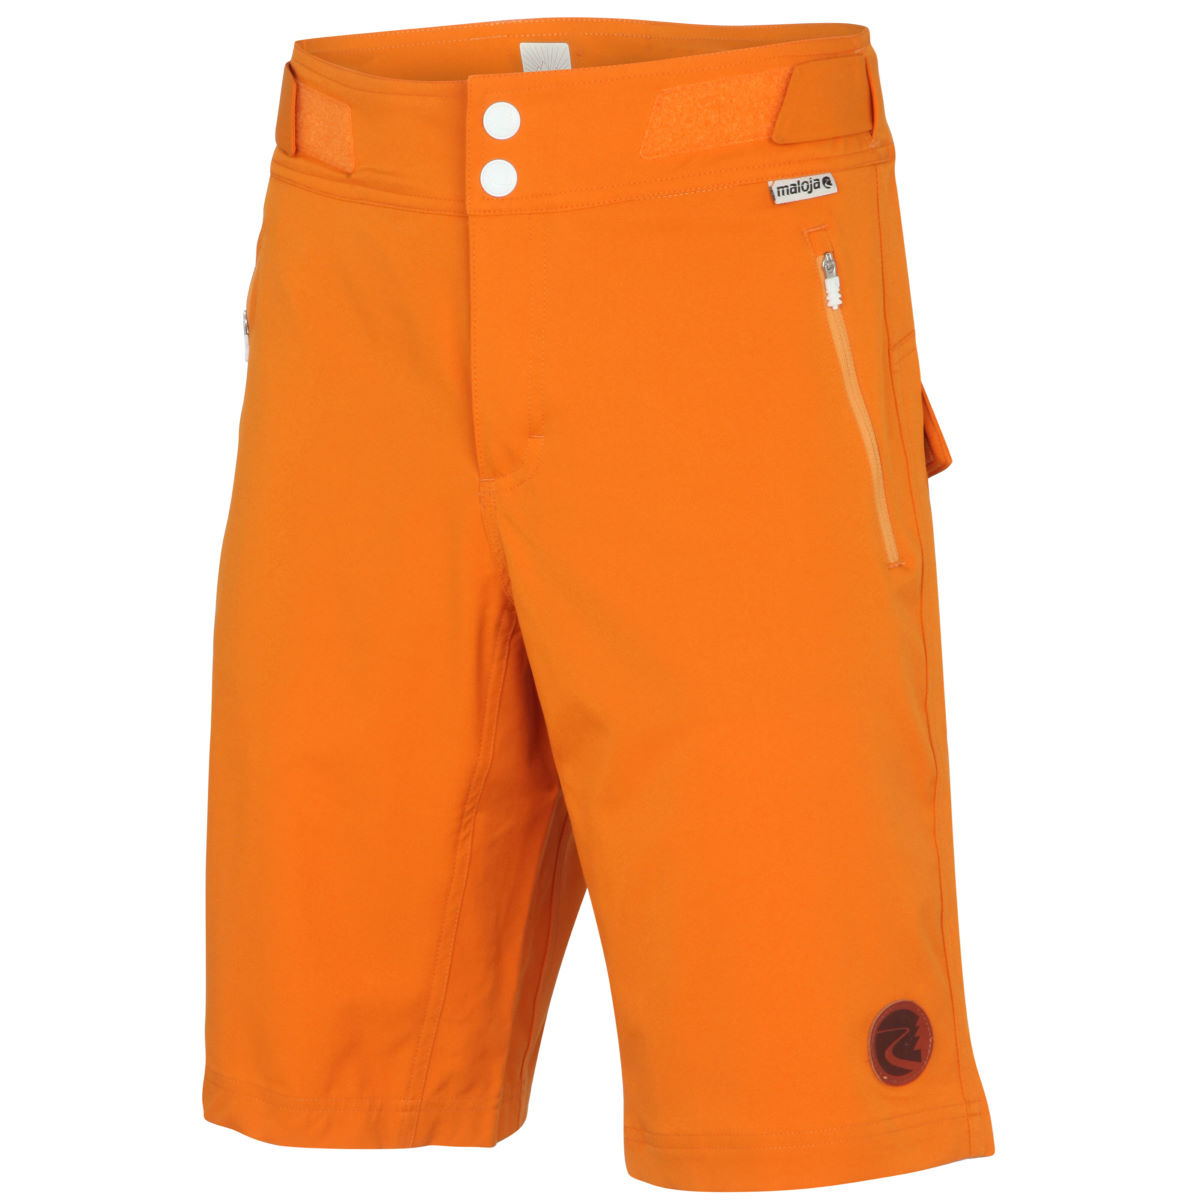 Short VTT Maloja DaveM. - L Orange Shorts VTT